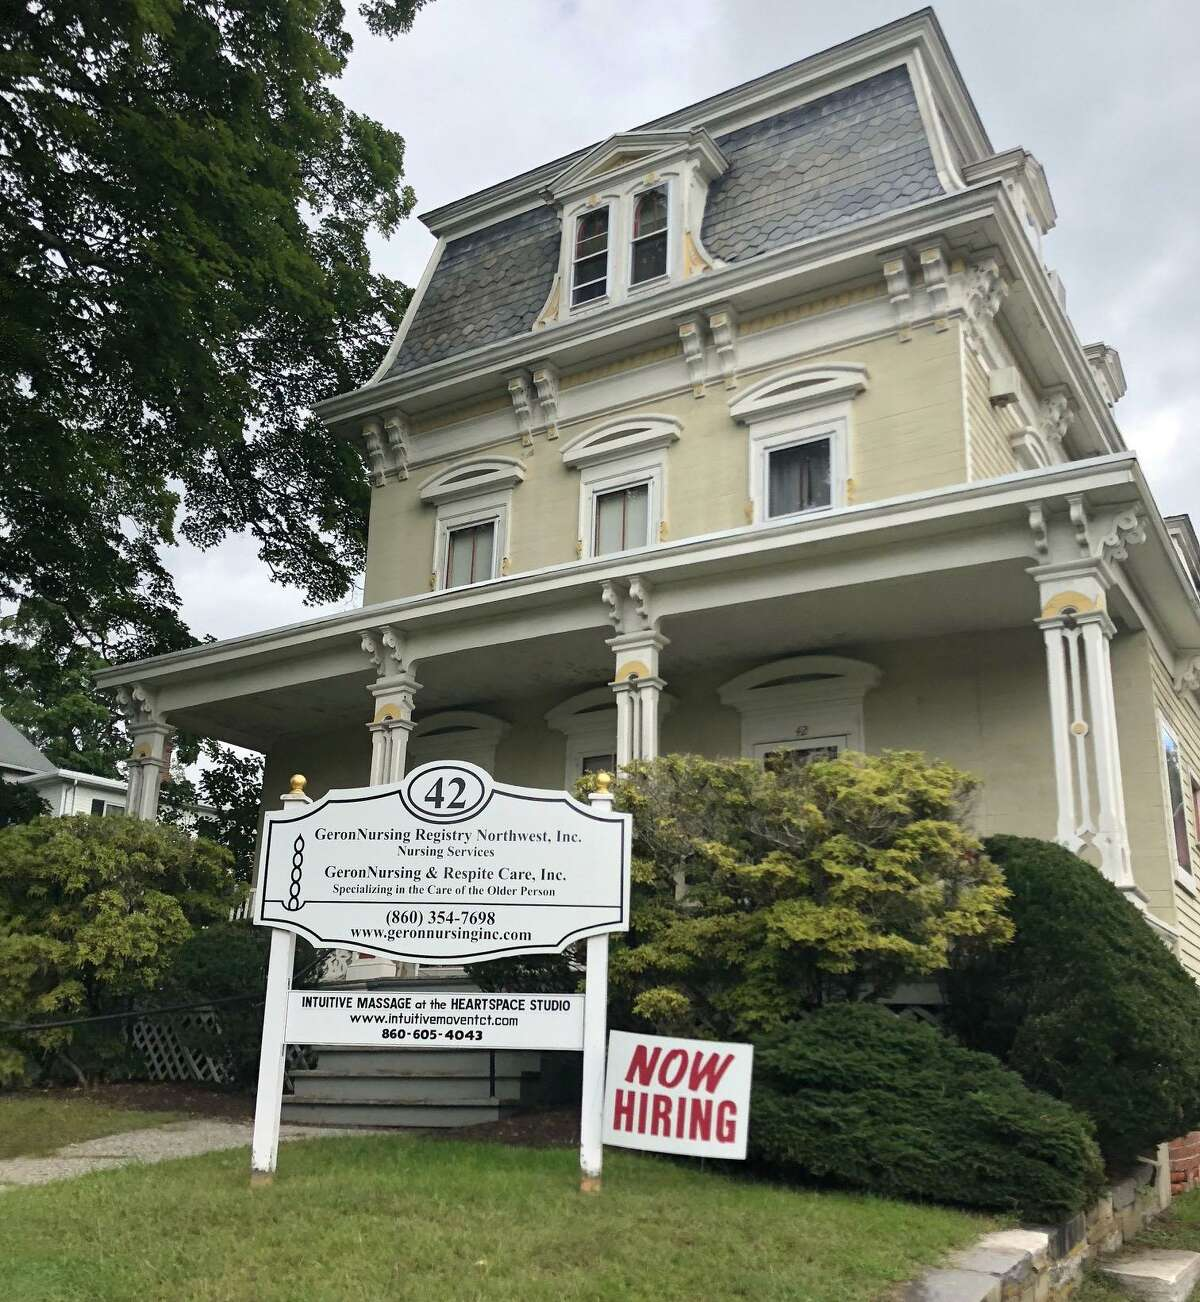 GeronNursing & Respite Care in New Milford is situated in an historic home at 42 Main St., overlooking the Village Green.